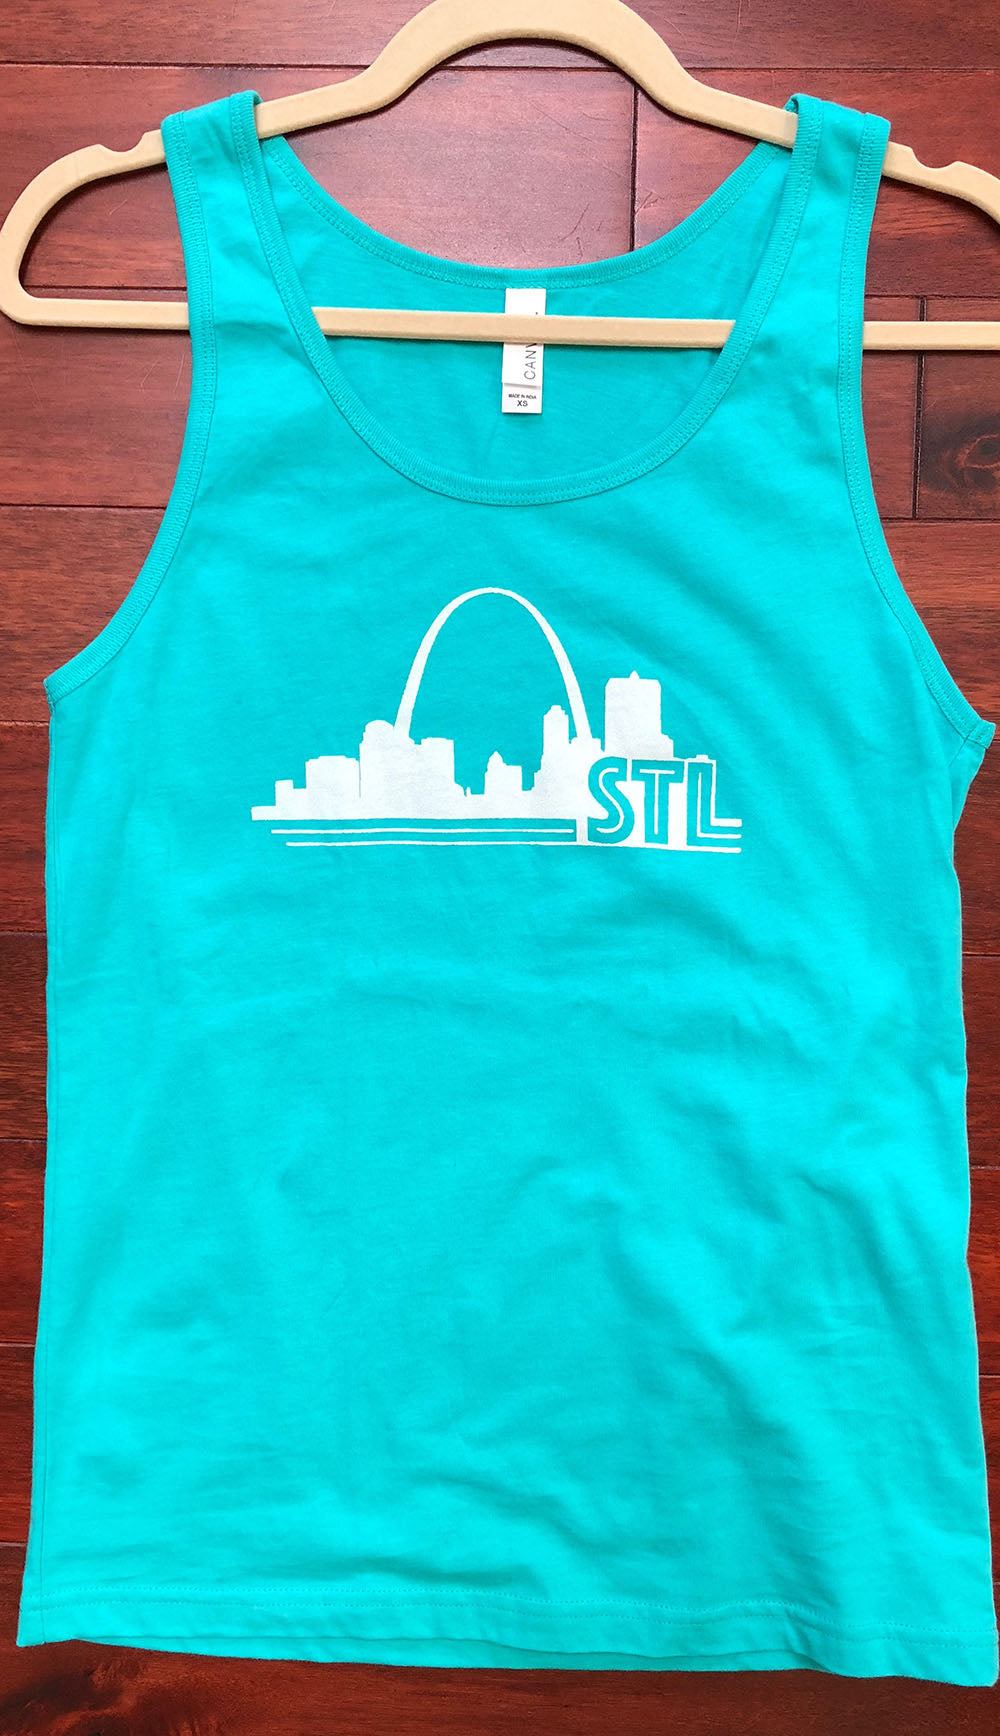 Men's/Women's St. Louis Print Tank Top